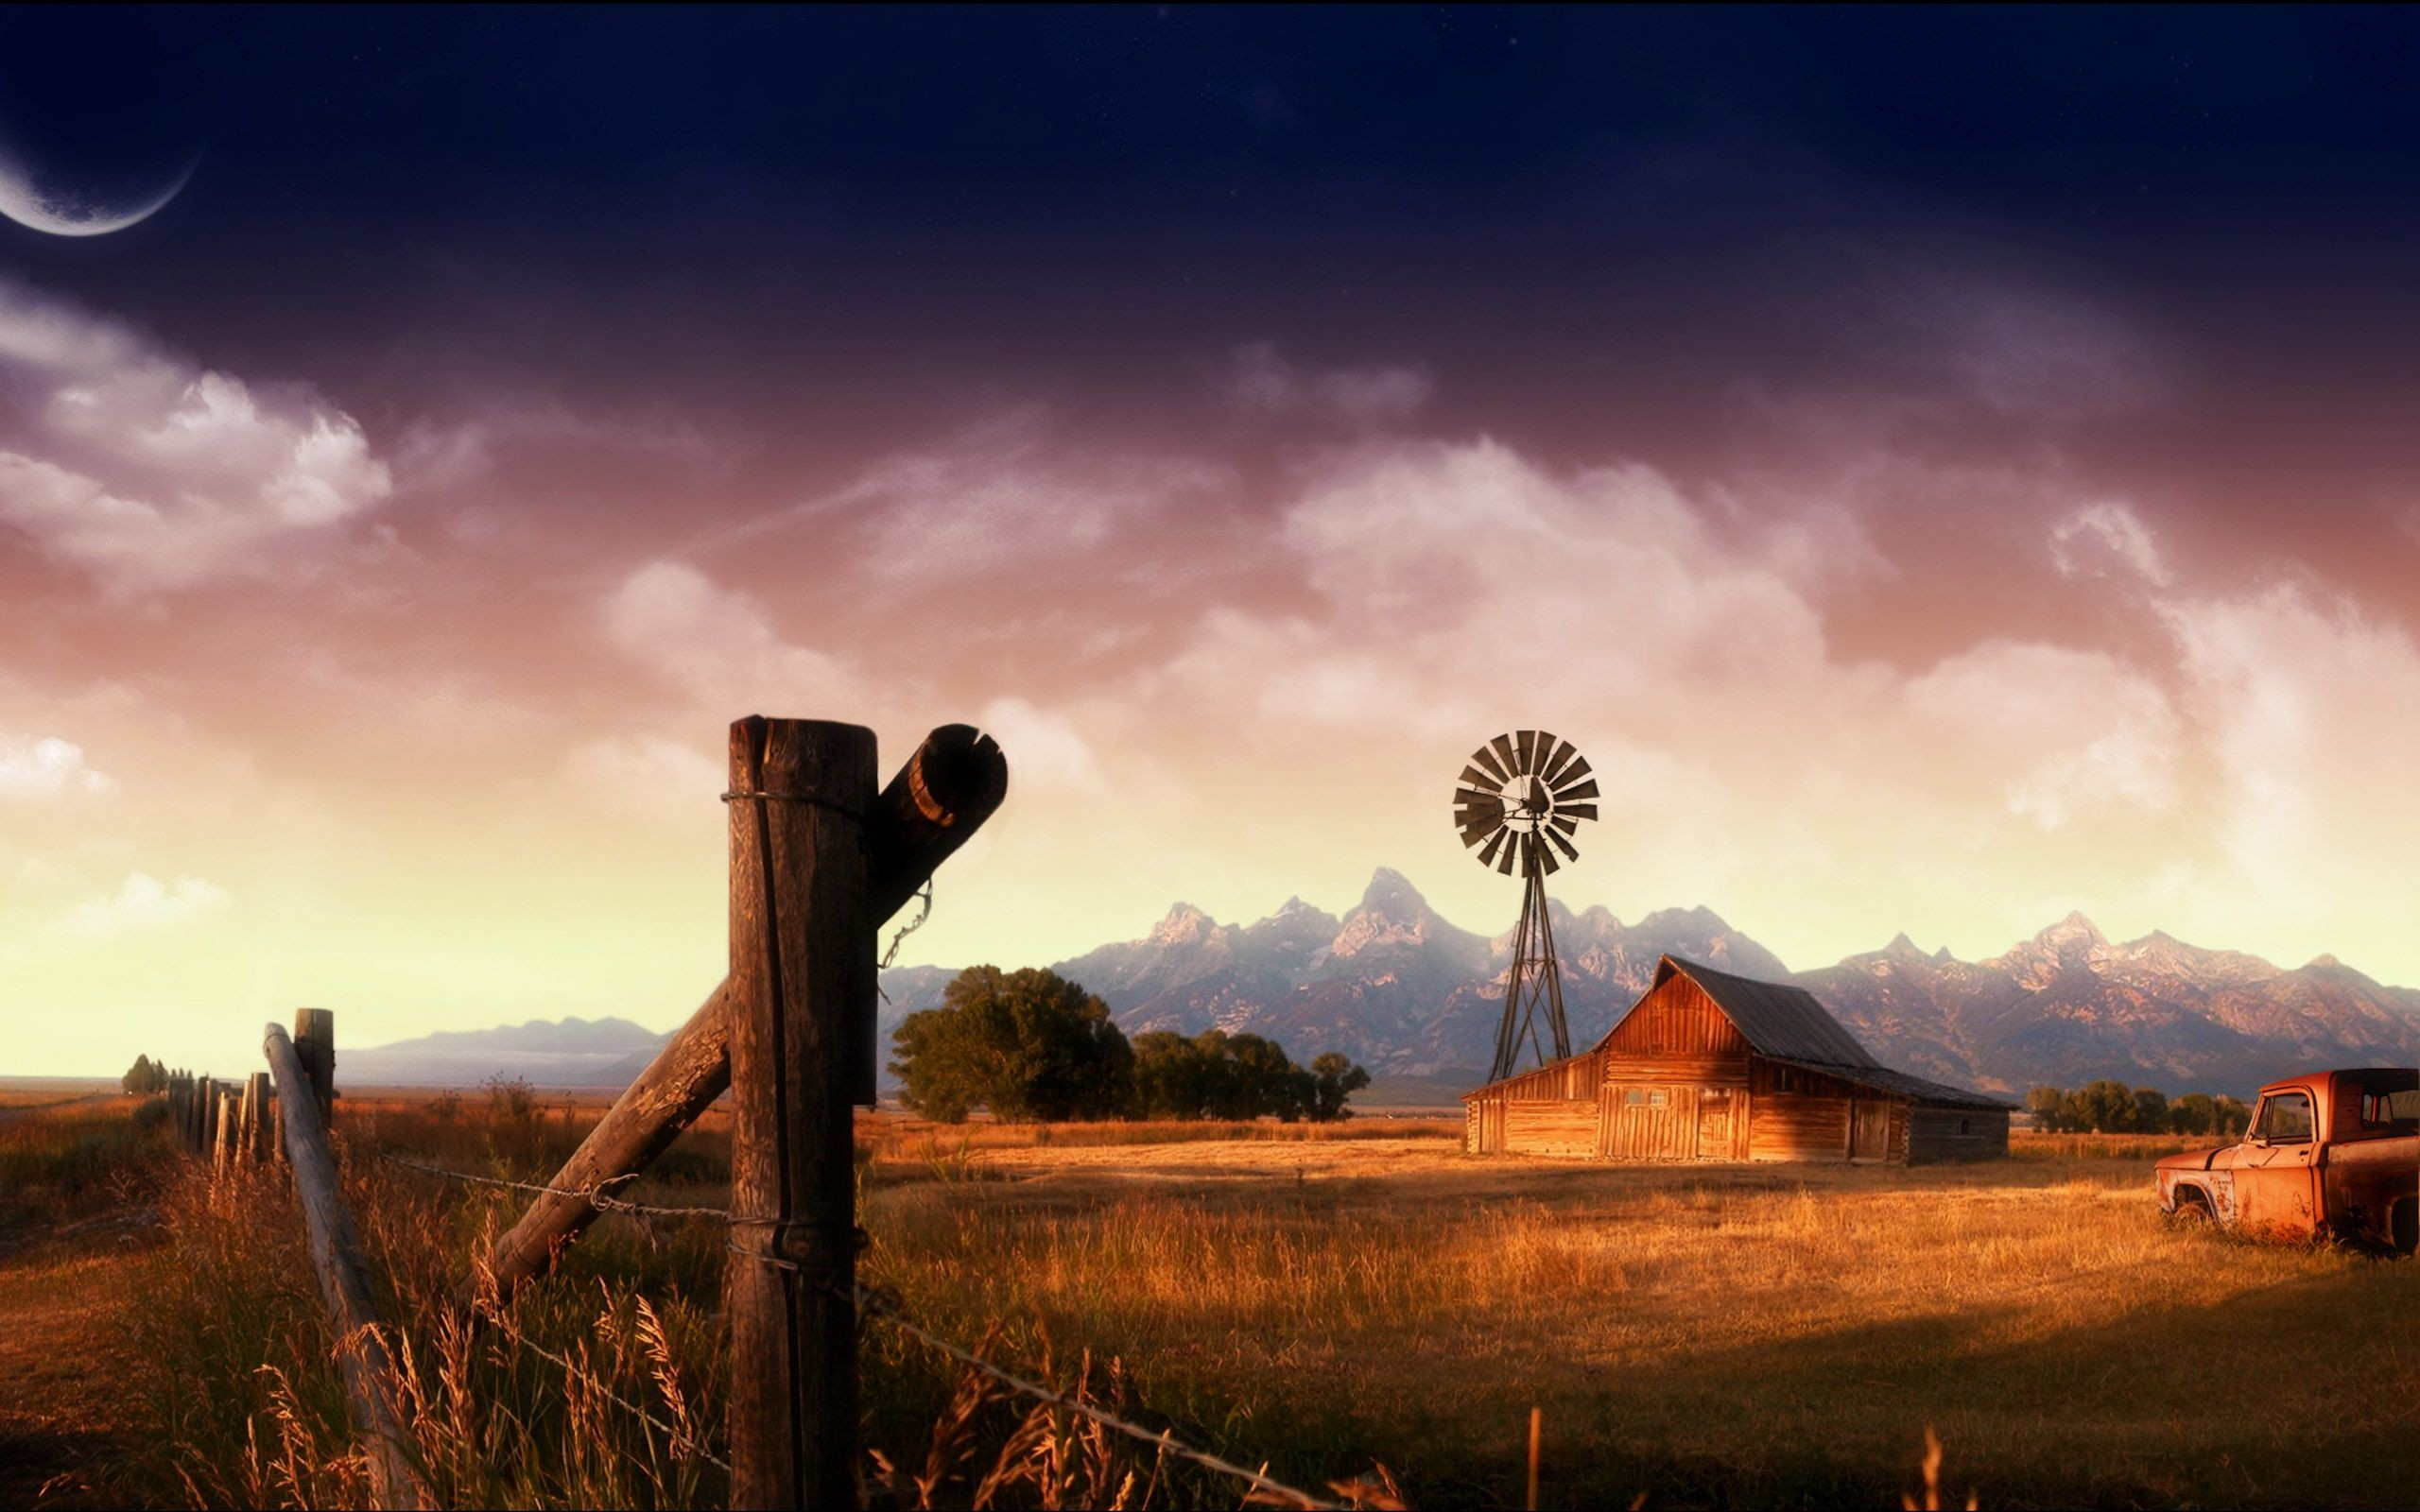 Country Wallpaper For Desktop Backgrounds (67+ Images